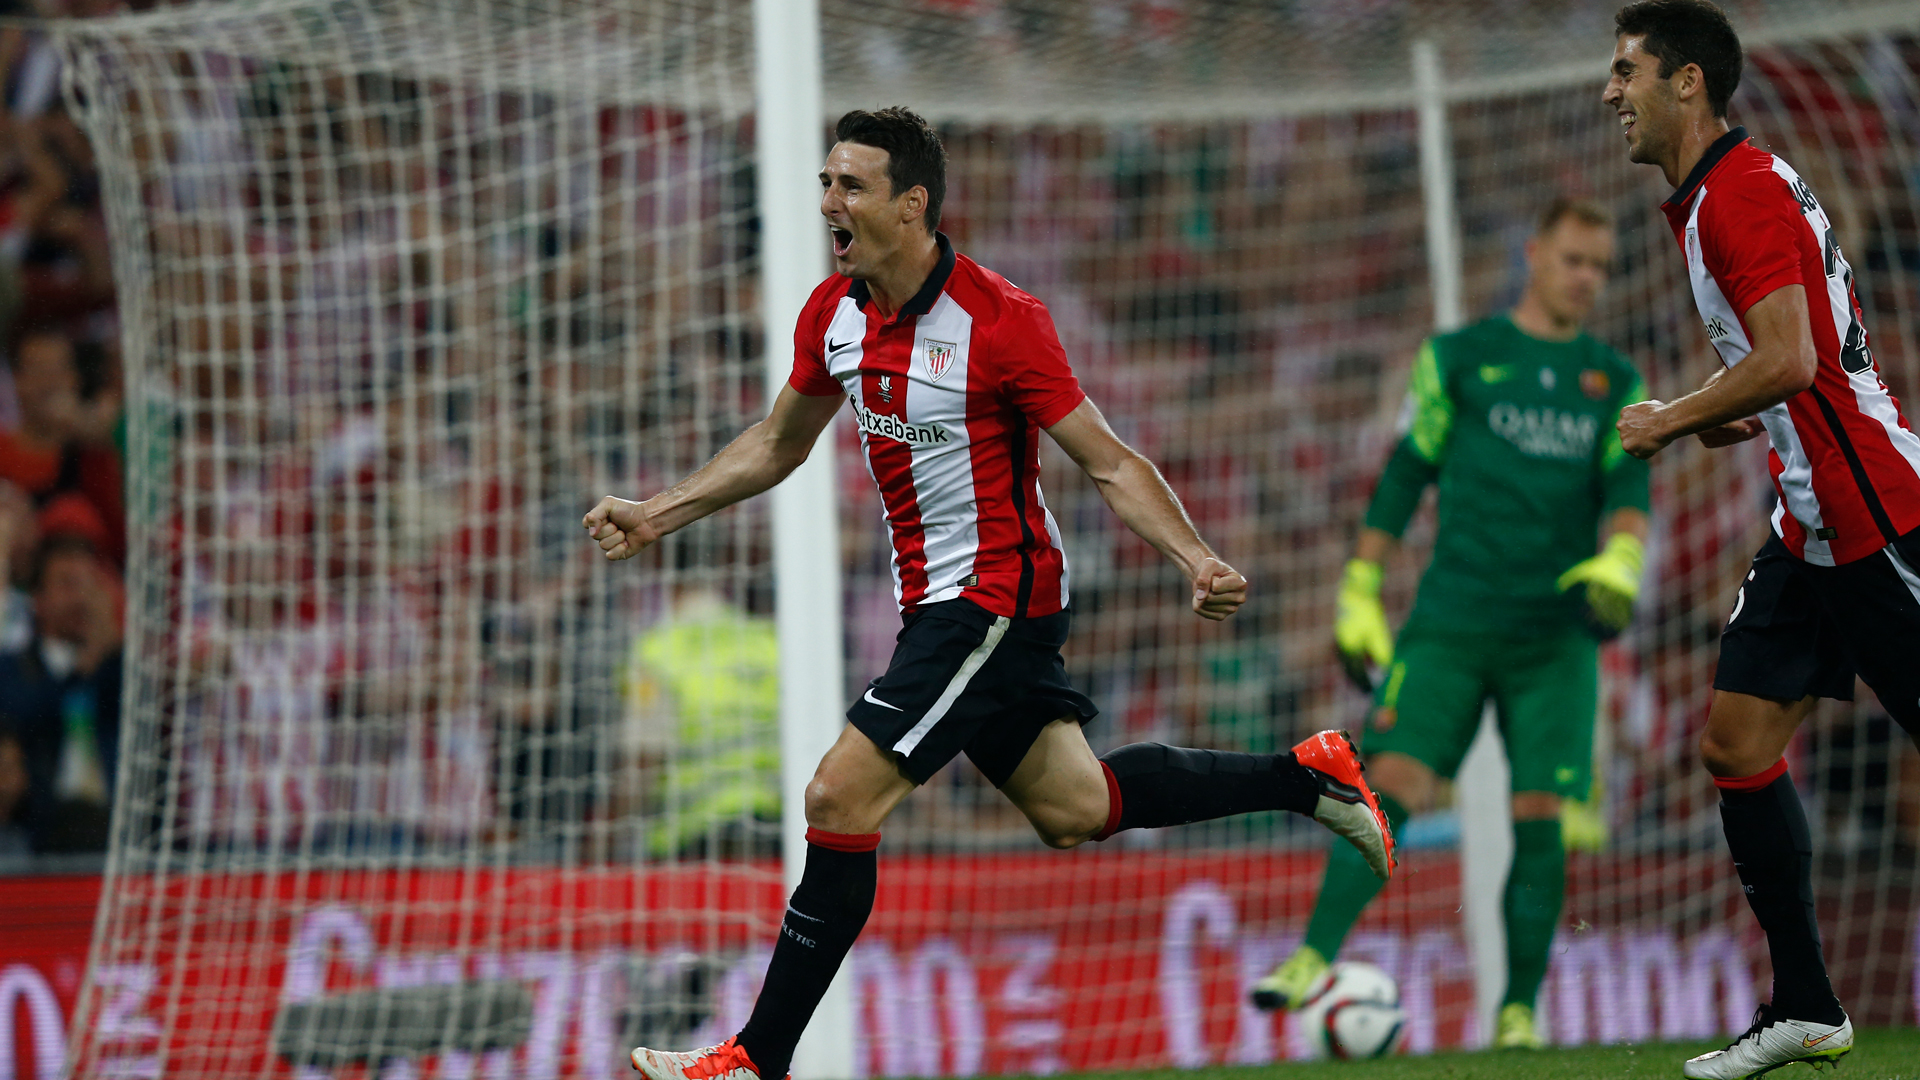 El Athletic en la Supercopa